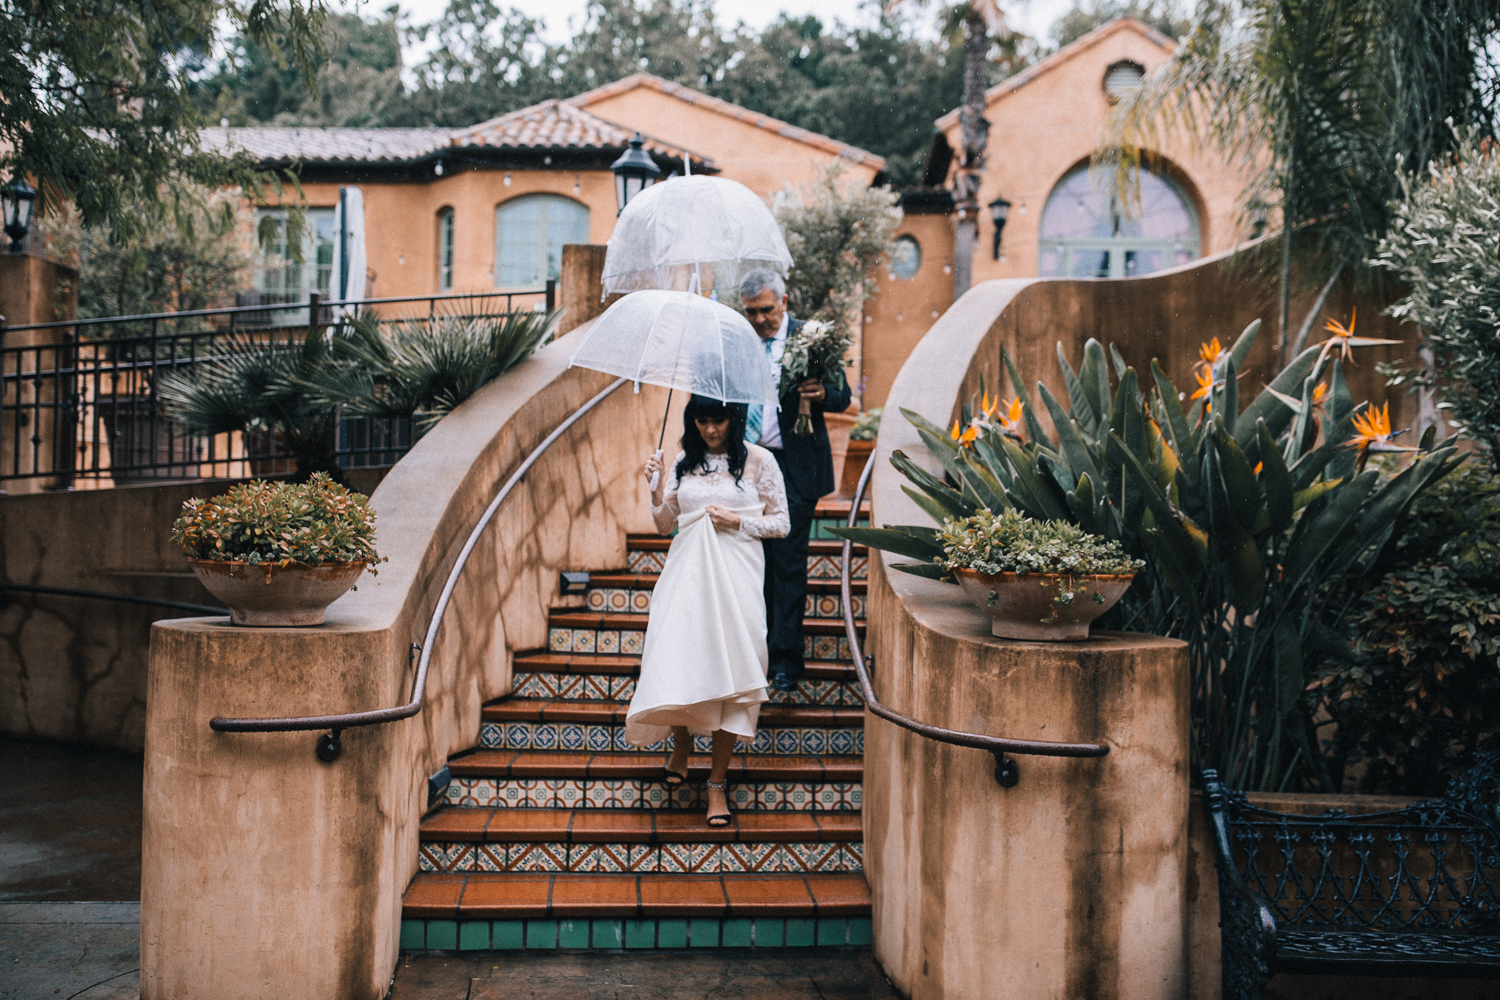 2019_05_ 182019.05.19 Lisa + Eddie South Bay Wedding Blog Photos Edited For Web 0057.jpg